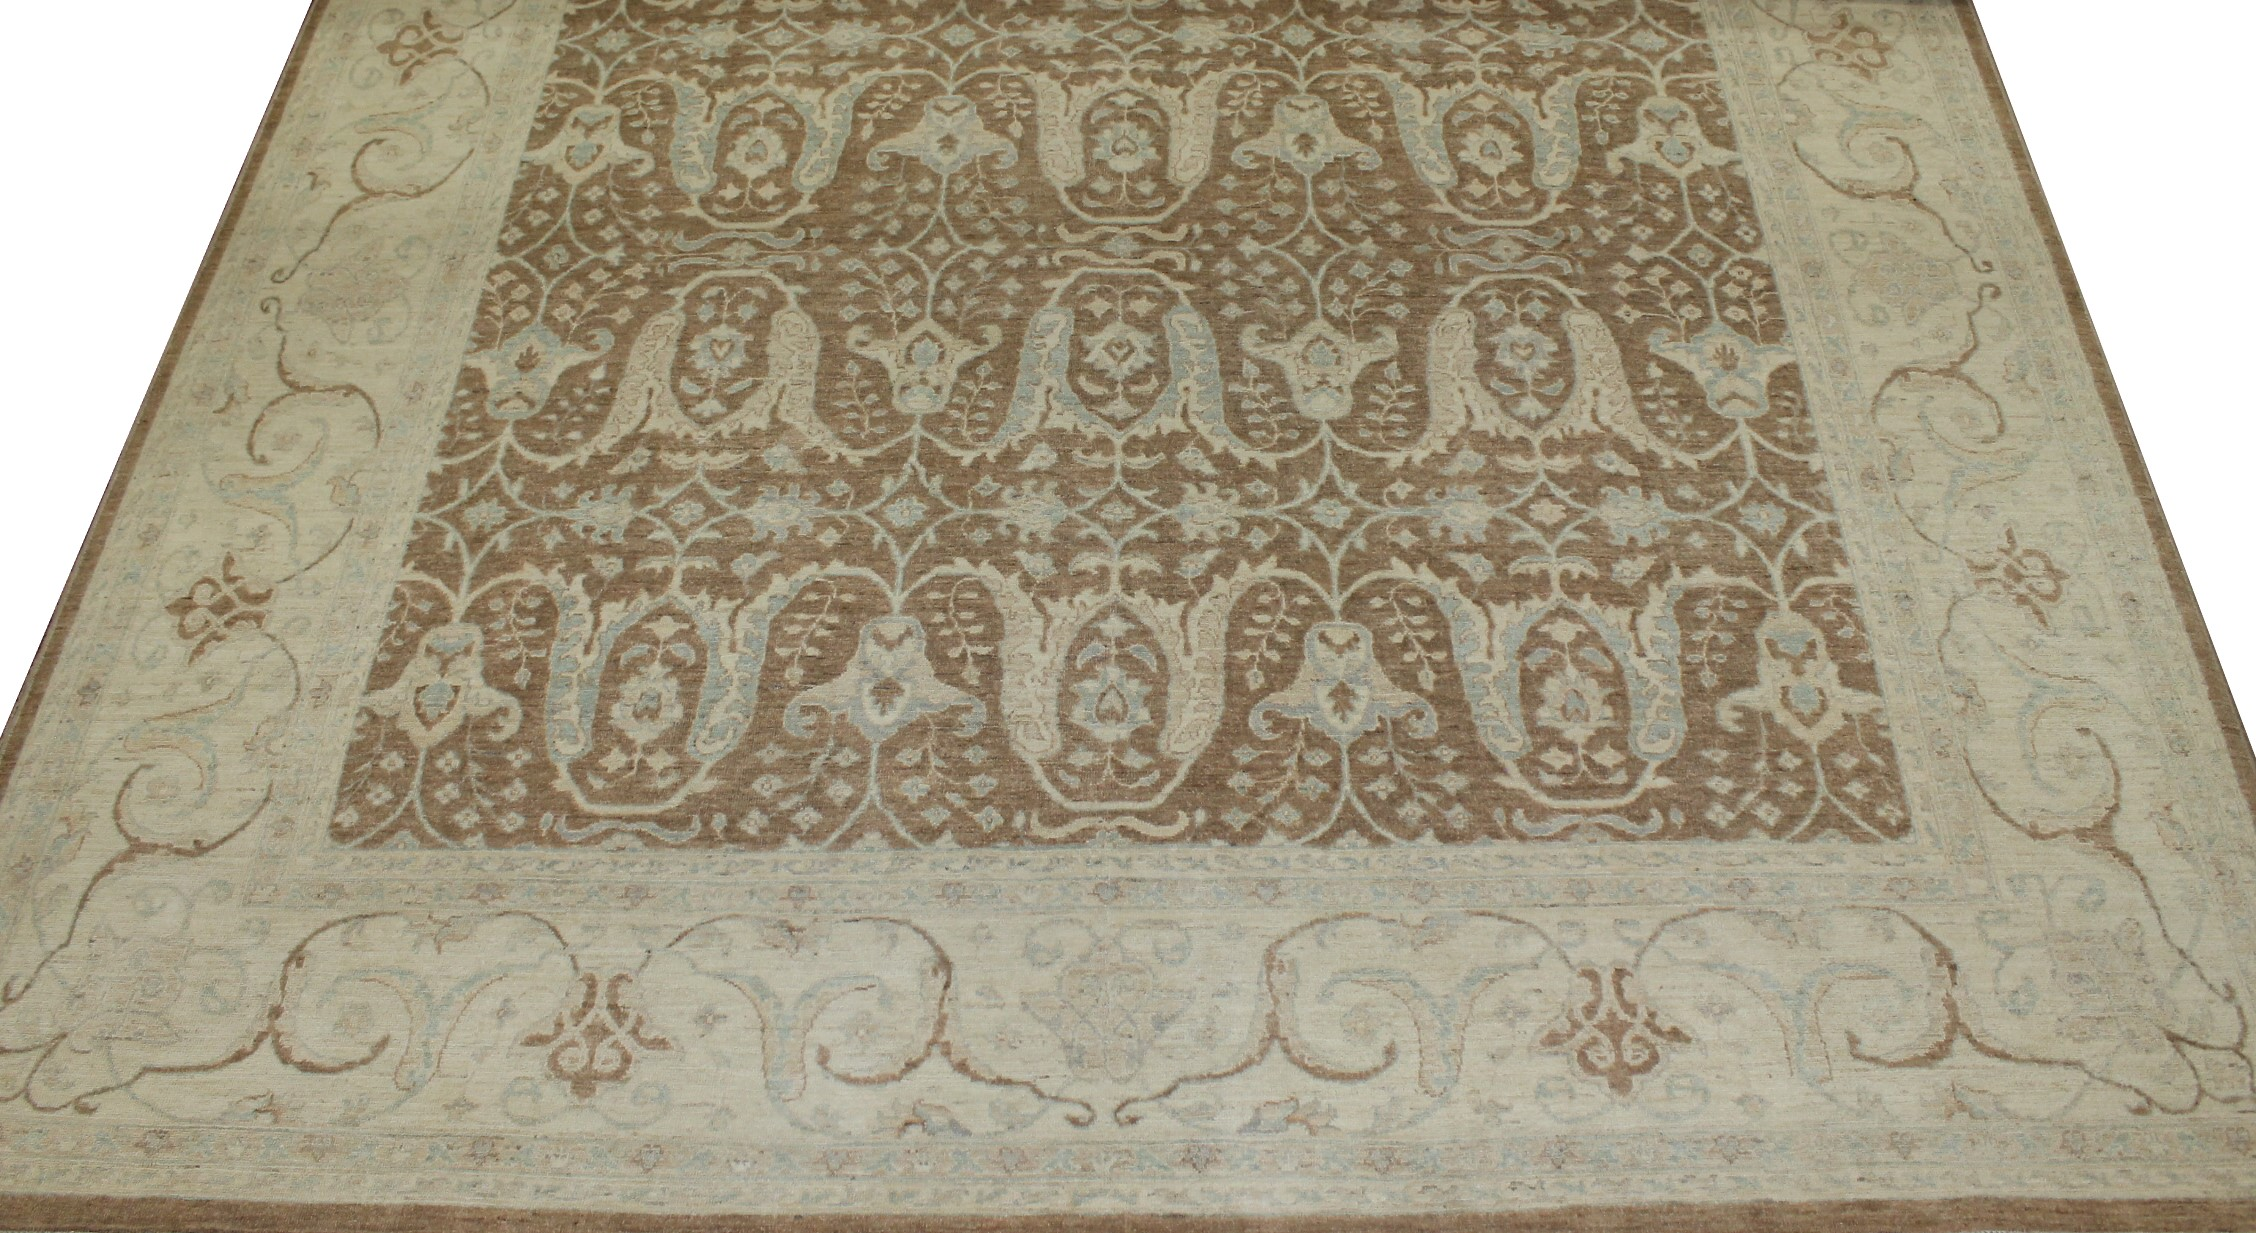 10x14 Peshawar Hand Knotted Wool Area Rug - MR18425